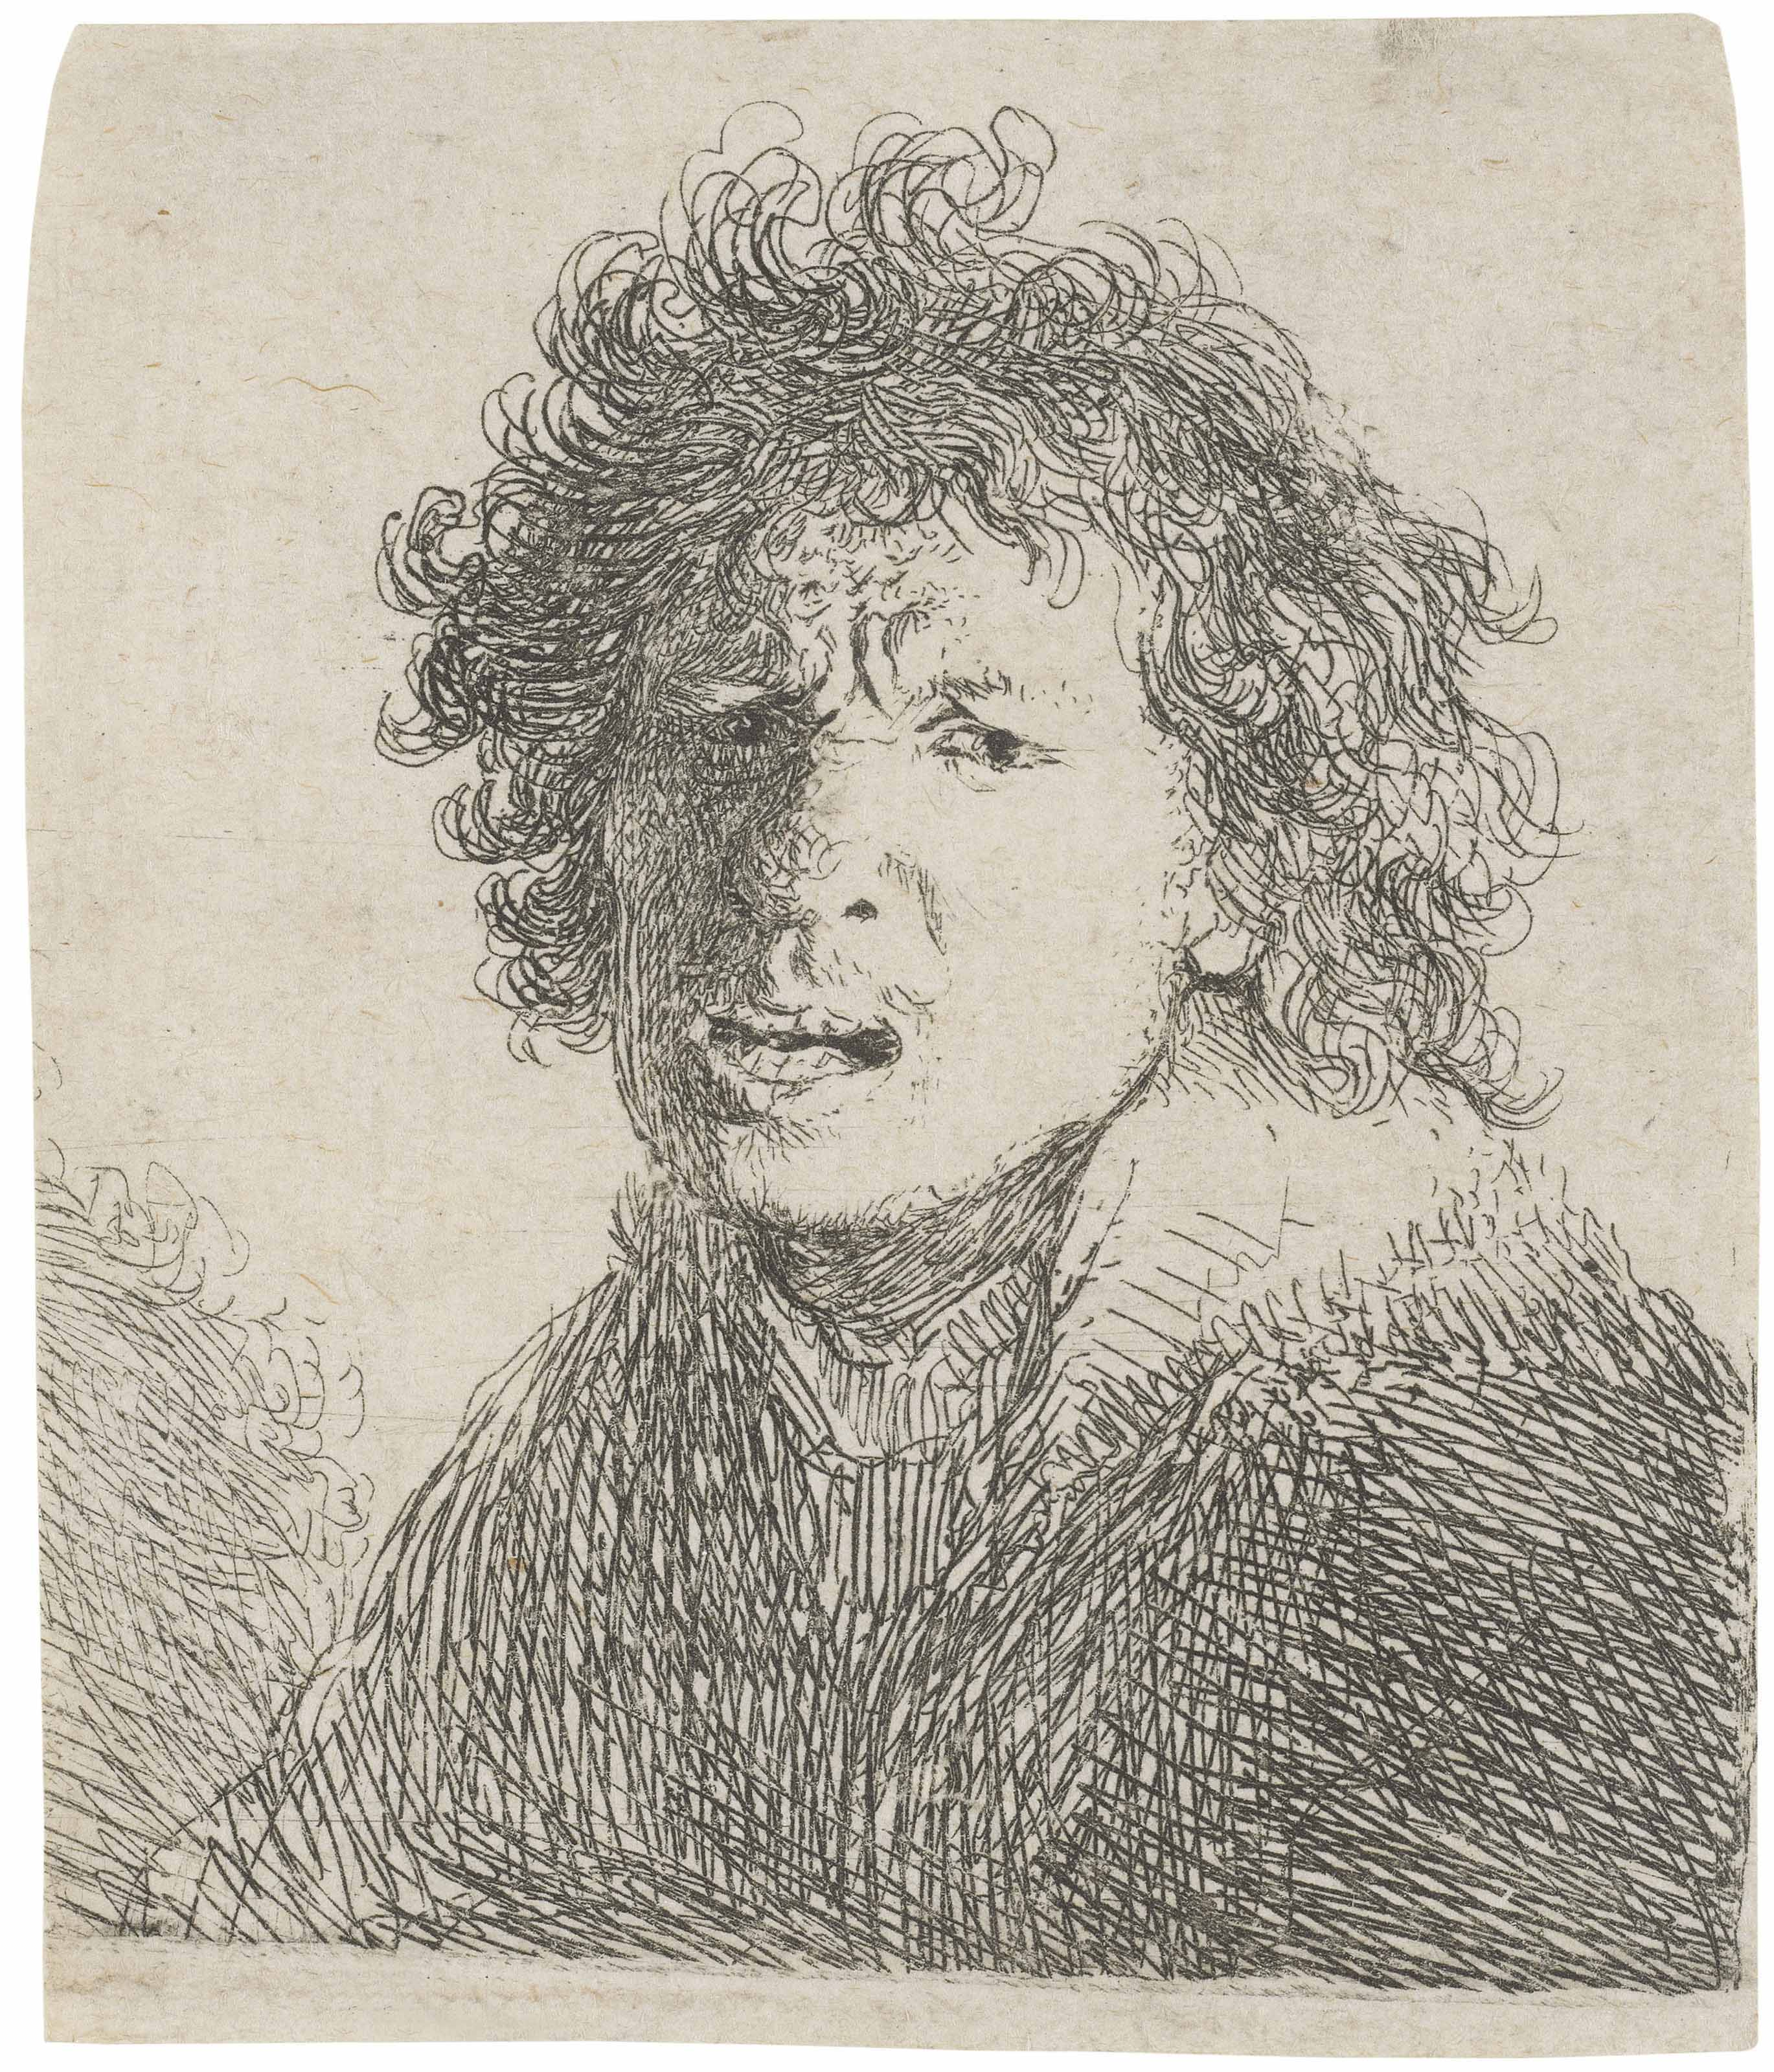 rembrandt 1630 ca self-portrait_open-mouthed_as_if_shouting)